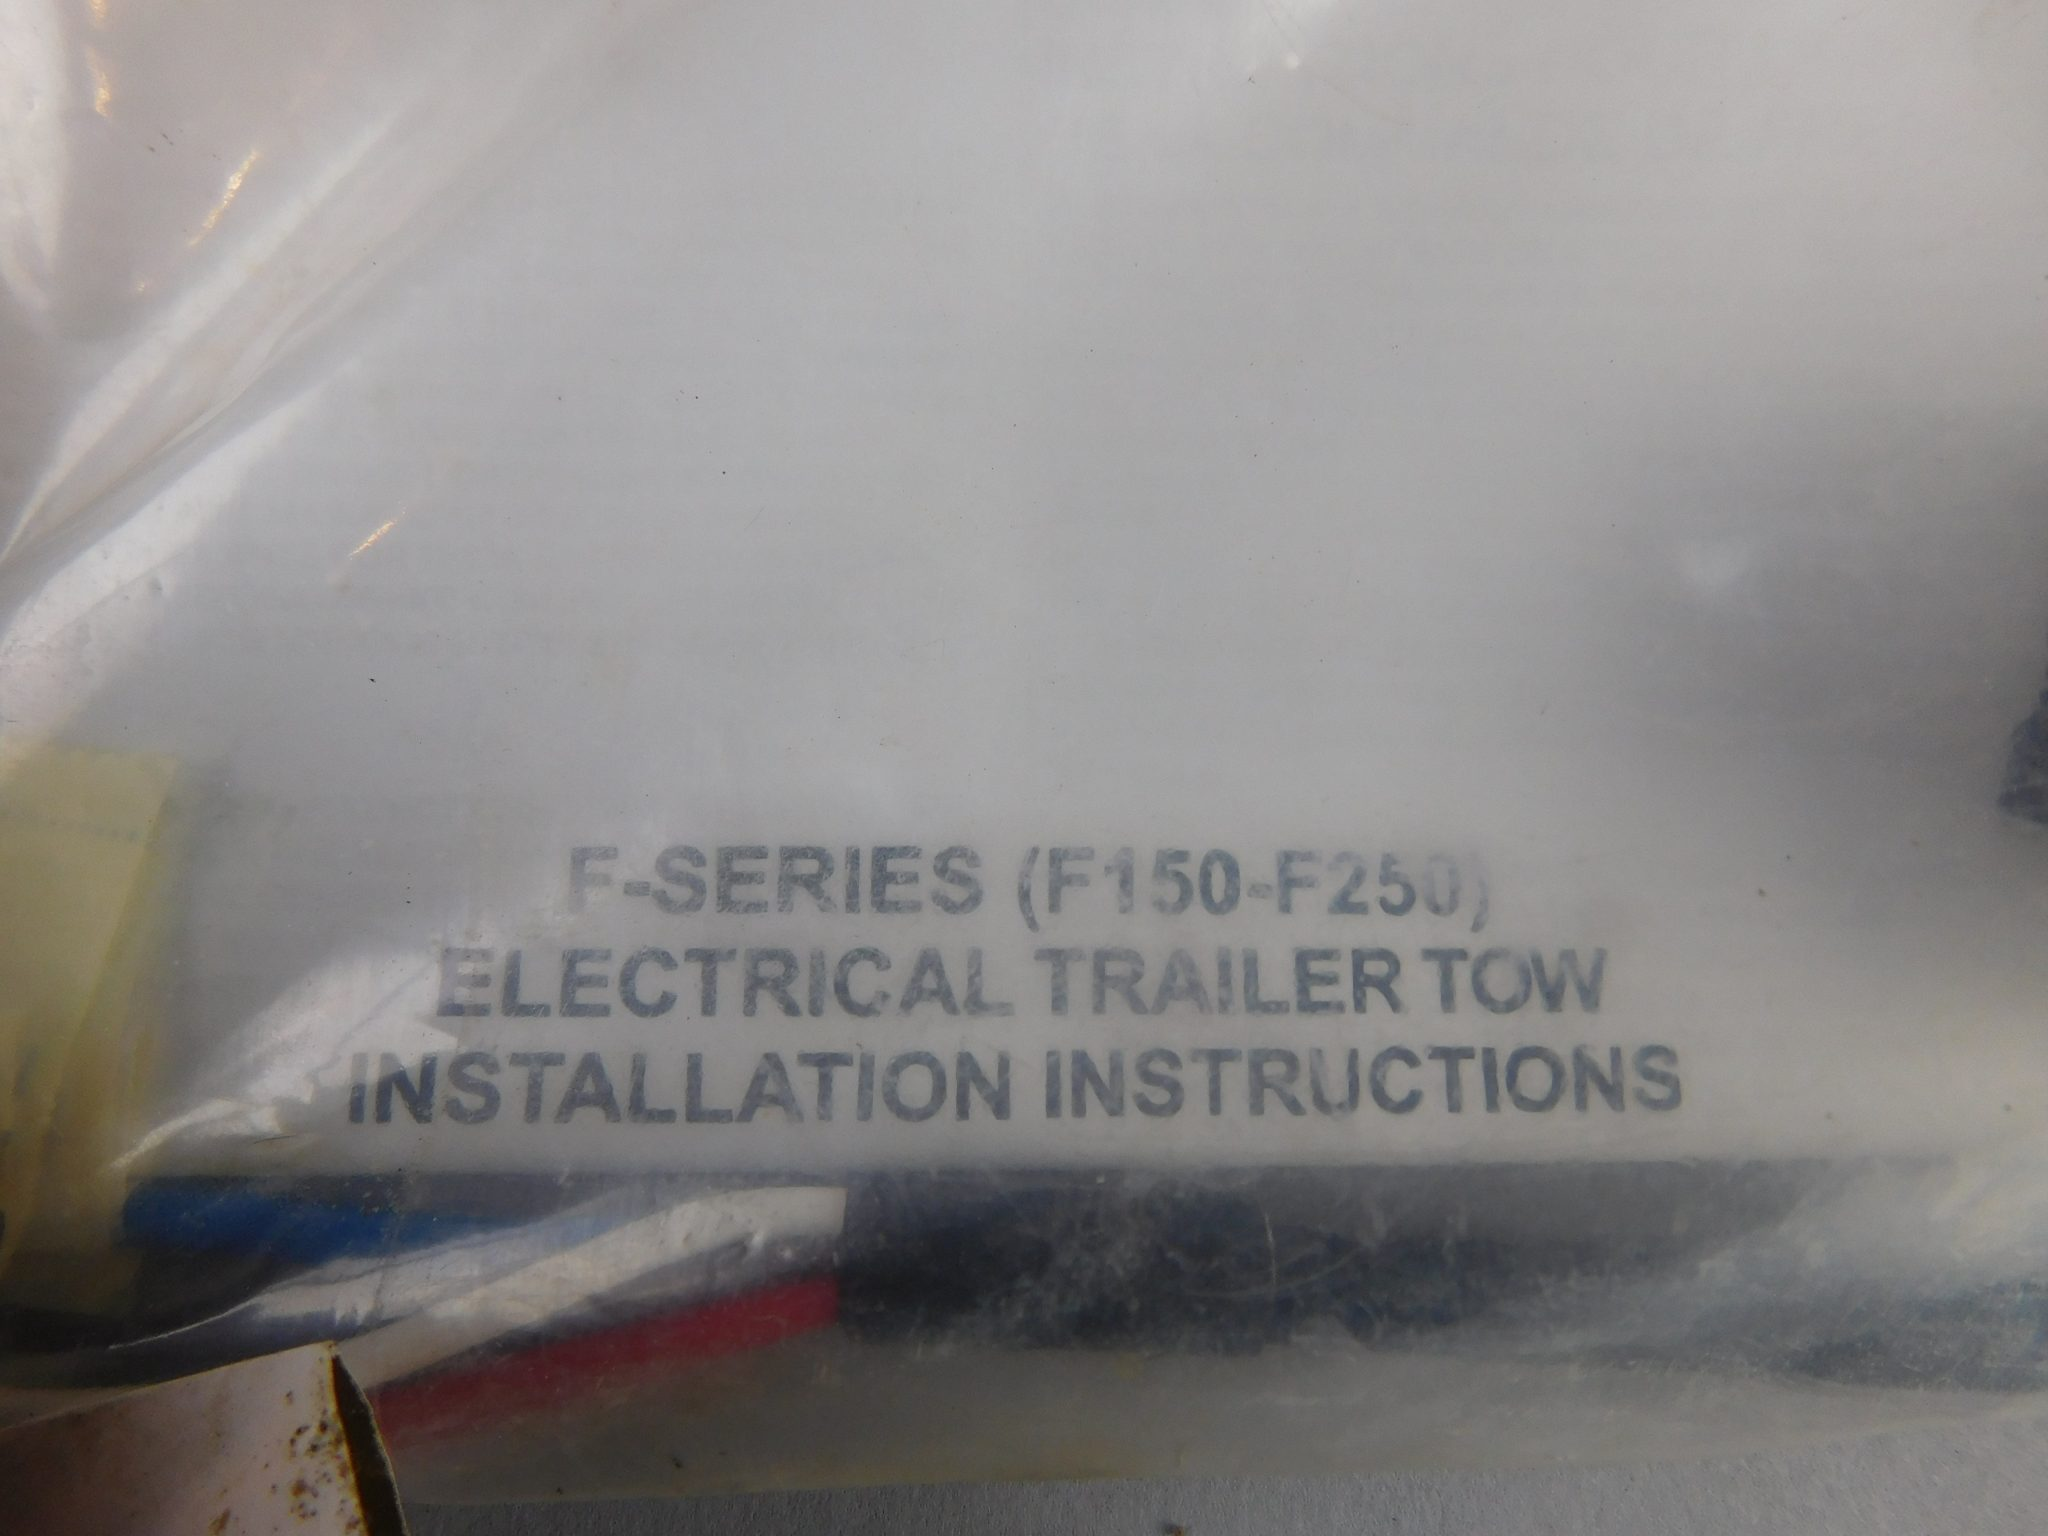 ford electrical trailer brake tow harness f150/f250 4l3t-15a416-1b